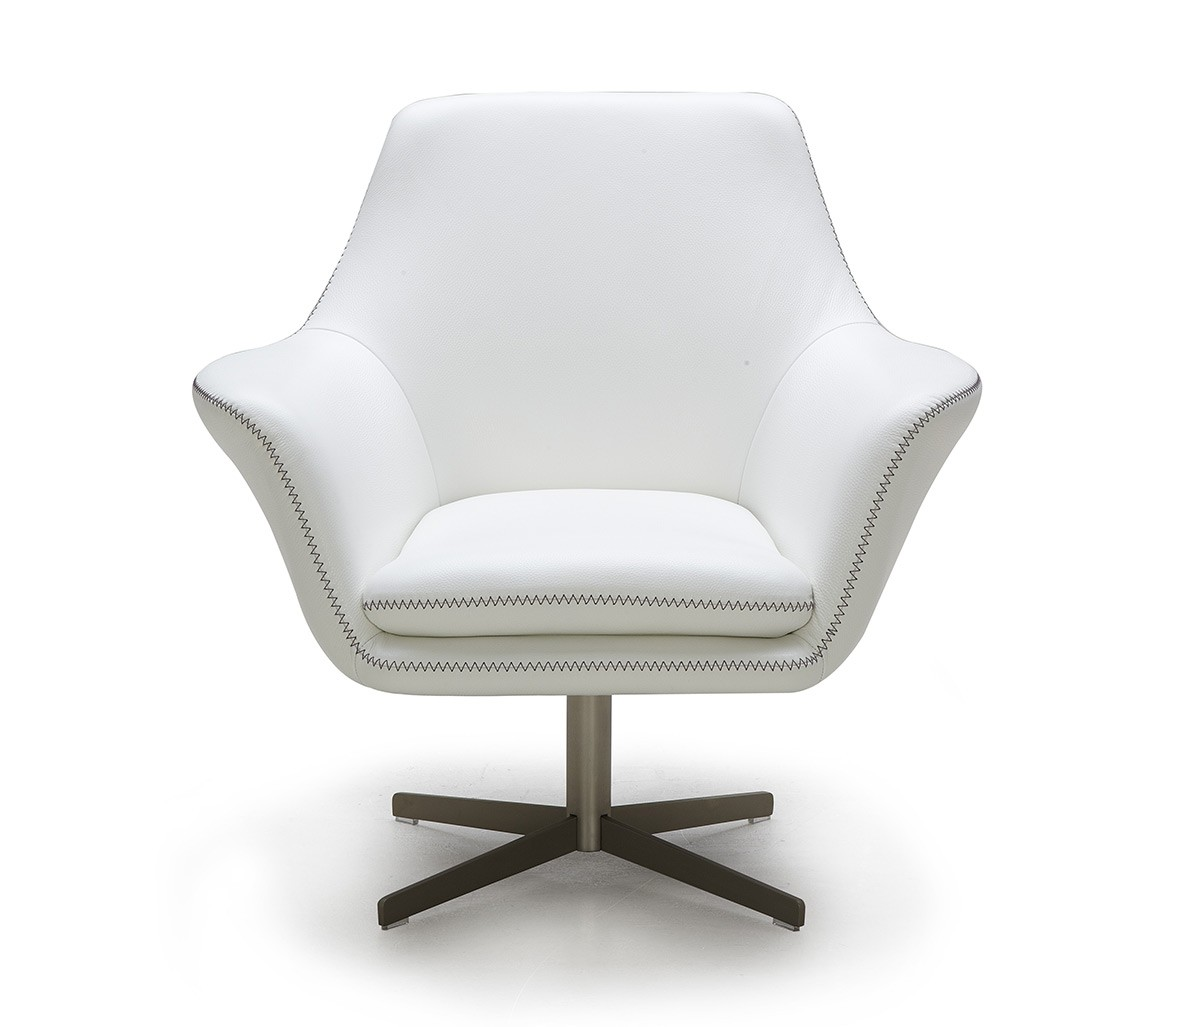 Lounge Chaises And Daybeds, Stylish Accessories. Modern White Leather  Swivel Lounge Chair